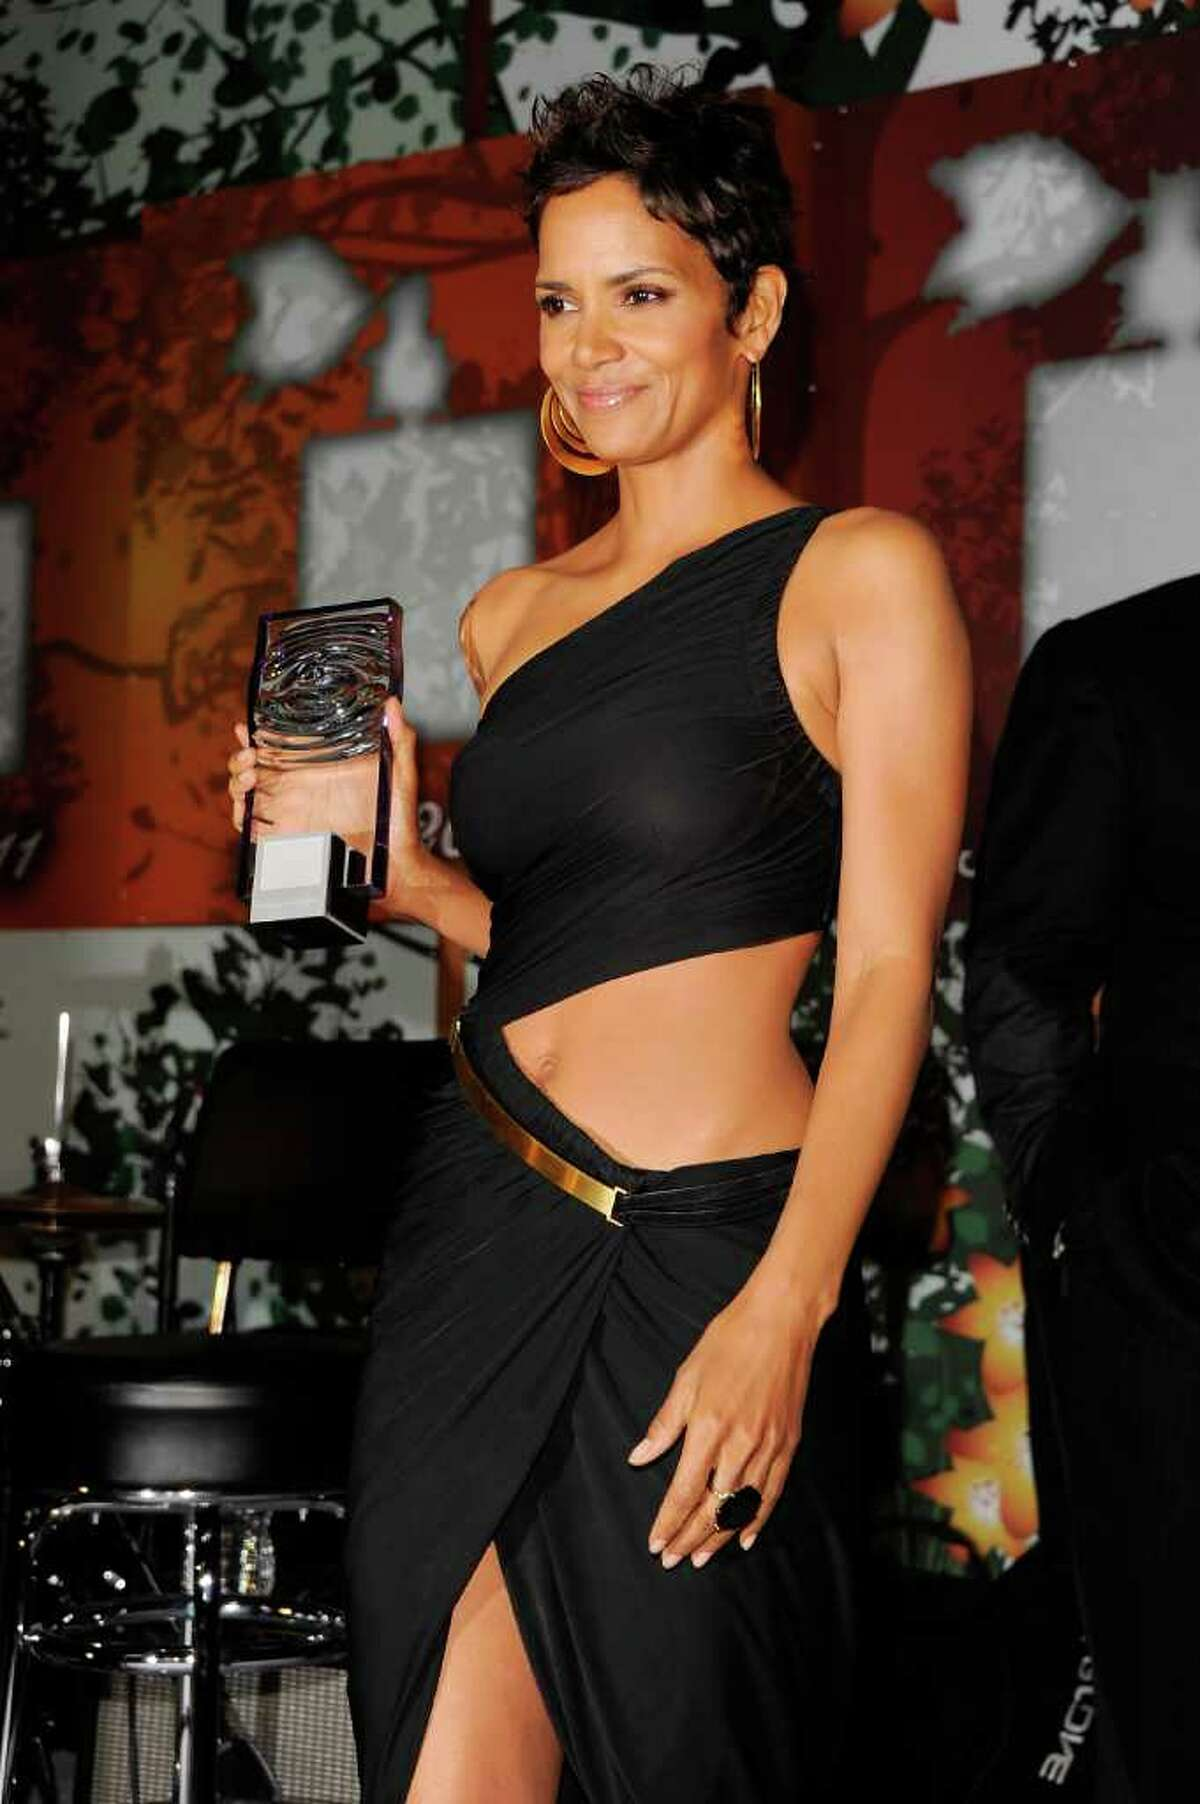 Actress Halle Berry accepts her award onstage during the 2011 FiFi Awards at The Tent at Lincoln Center in New York City.